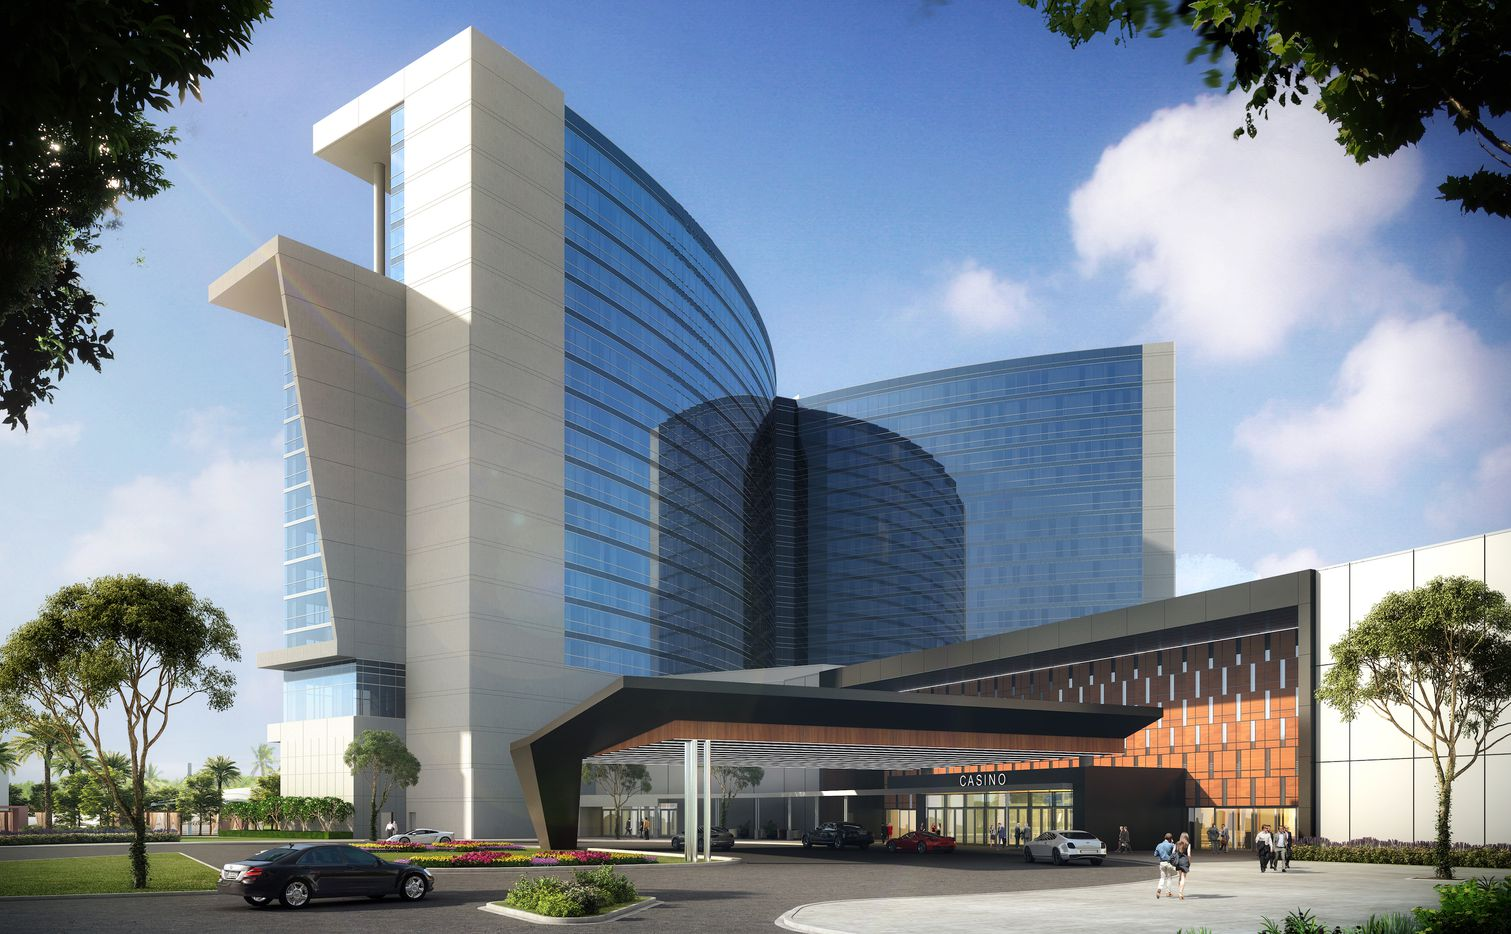 Choctaw Casino & Resort's addition will add more than 1,000 jobs.